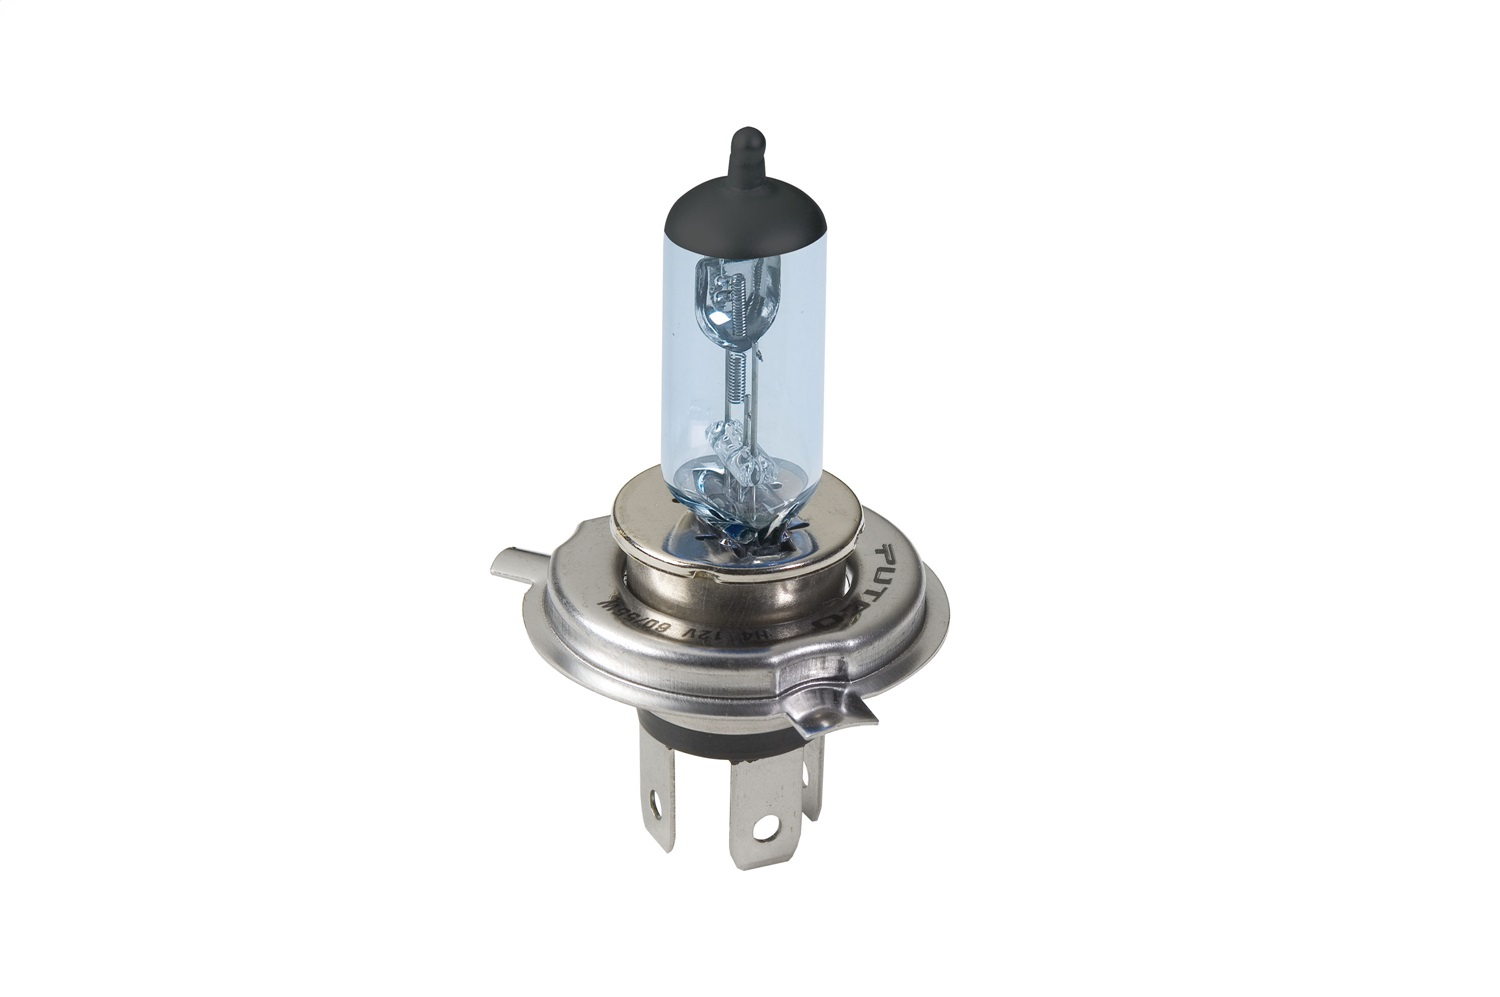 Putco Lighting 230004NW-S Halogen Bulb